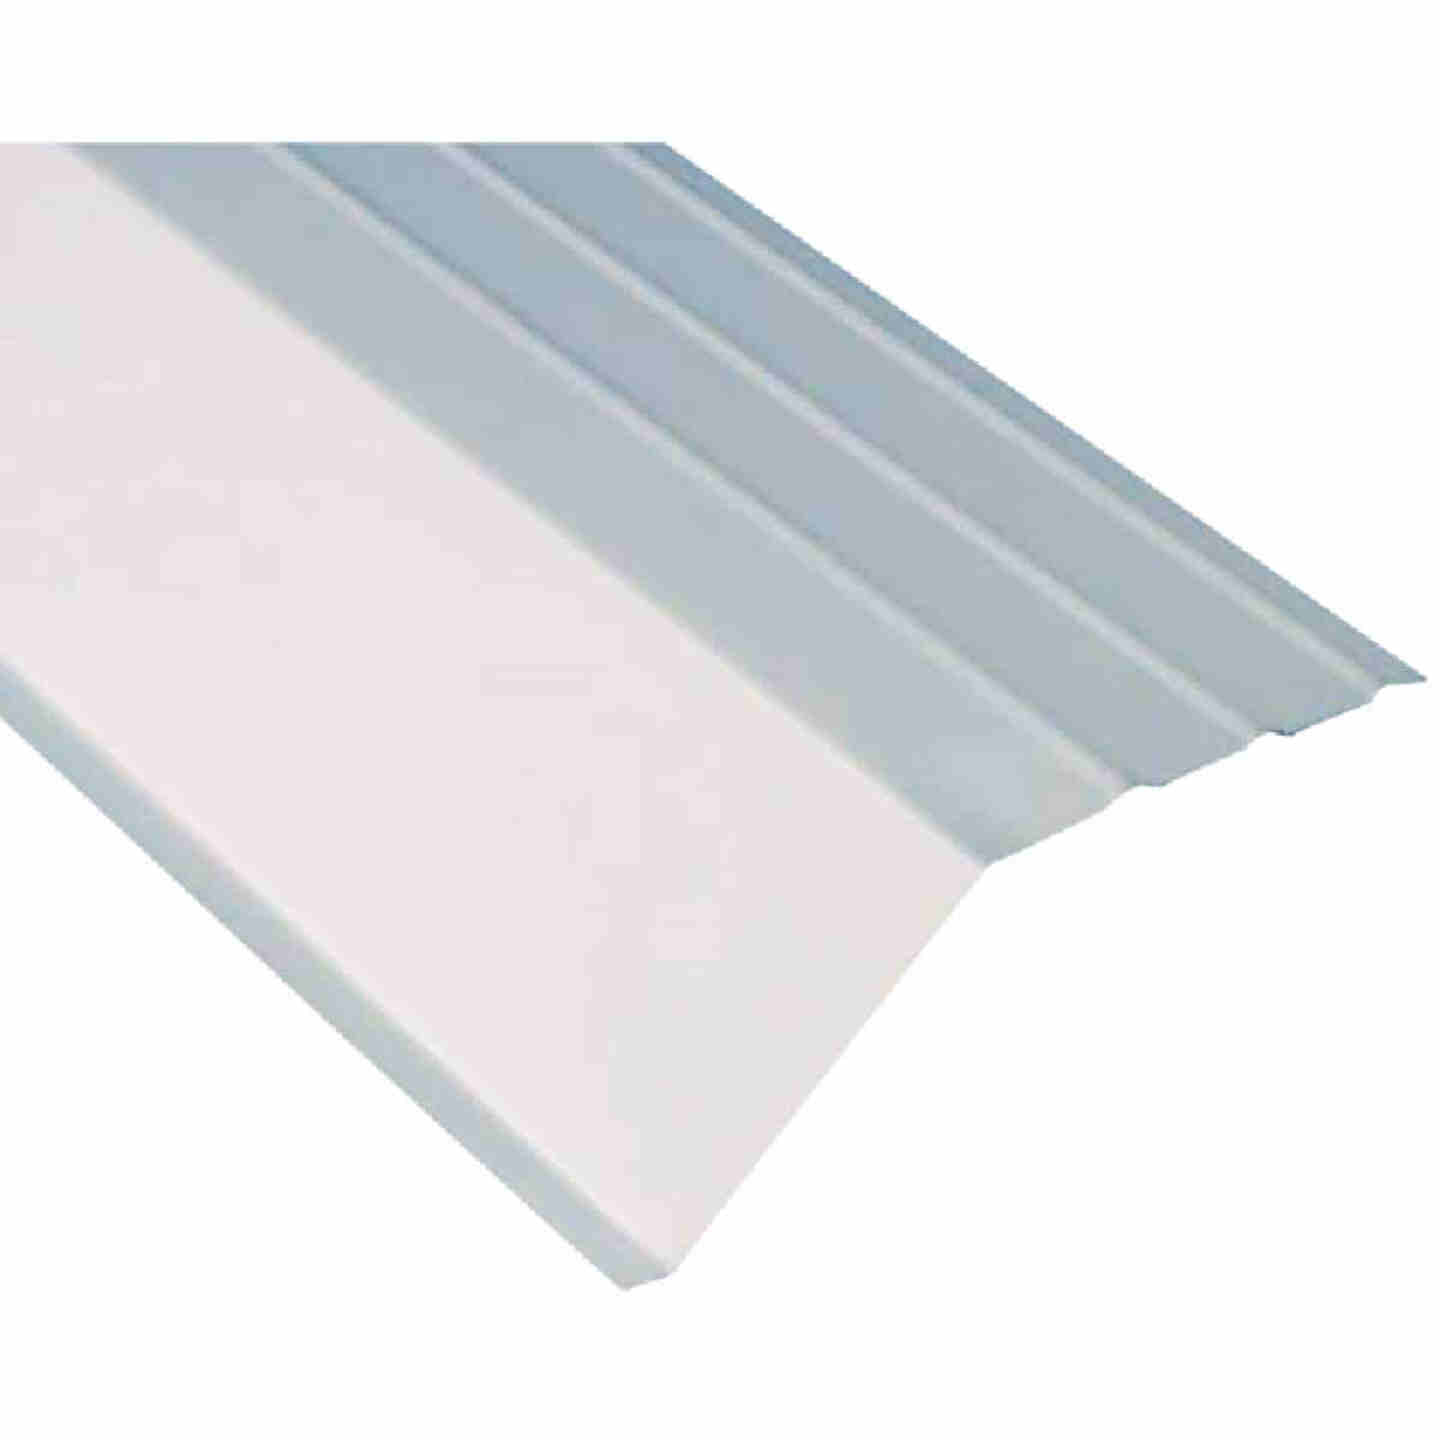 Amerimax 5 In. Galvanized Steel Roof Apron Flashing, White Image 1